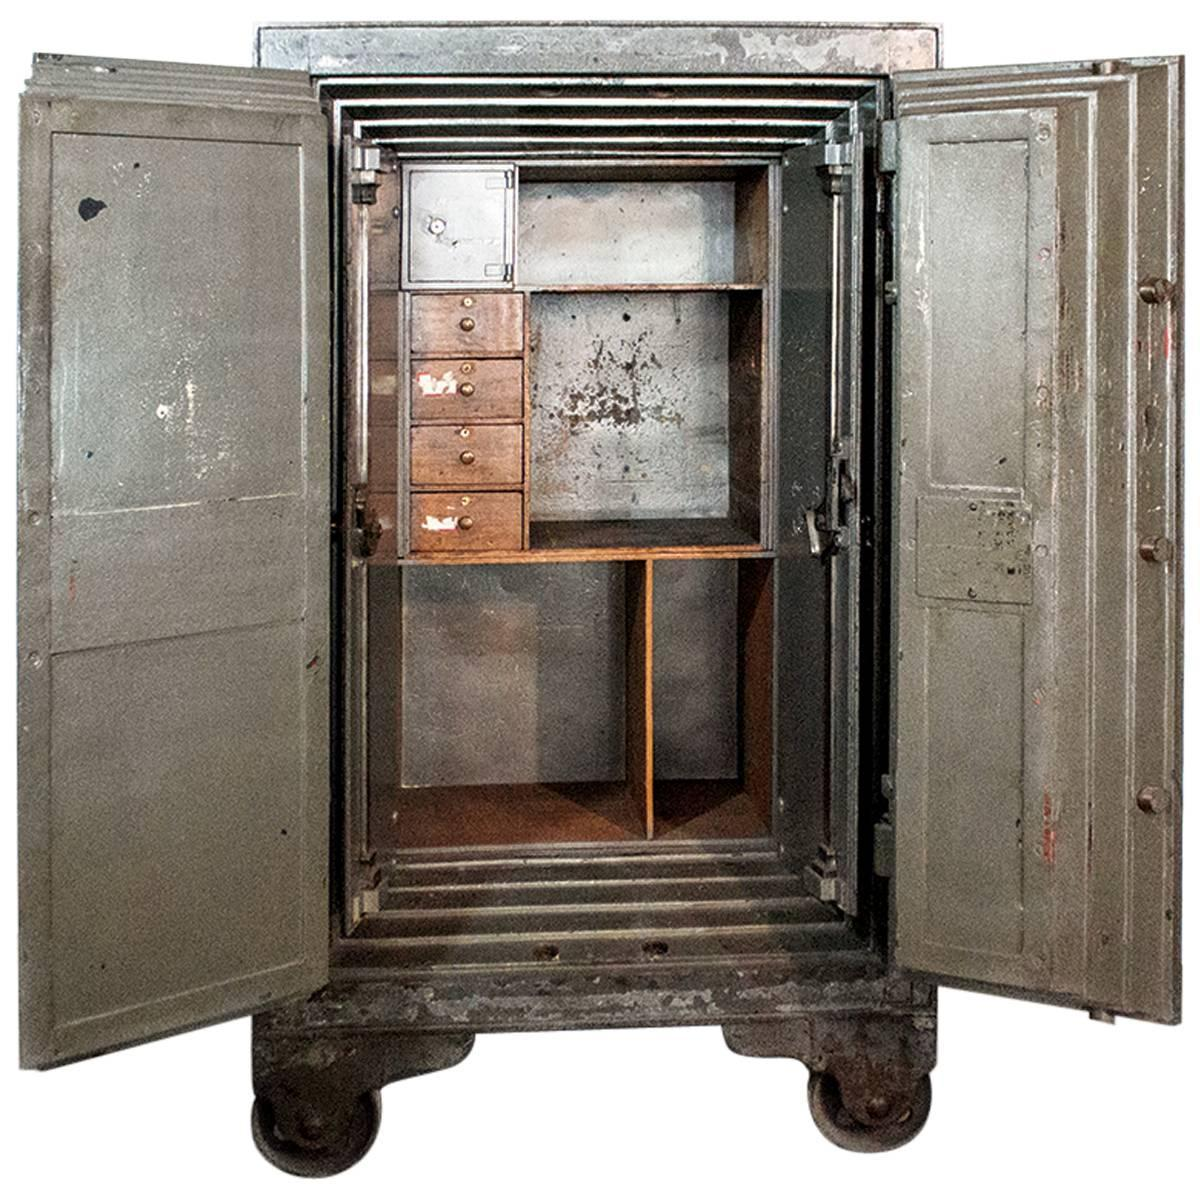 Massive Antique Floor Safe Circa 1875 At 1stdibs